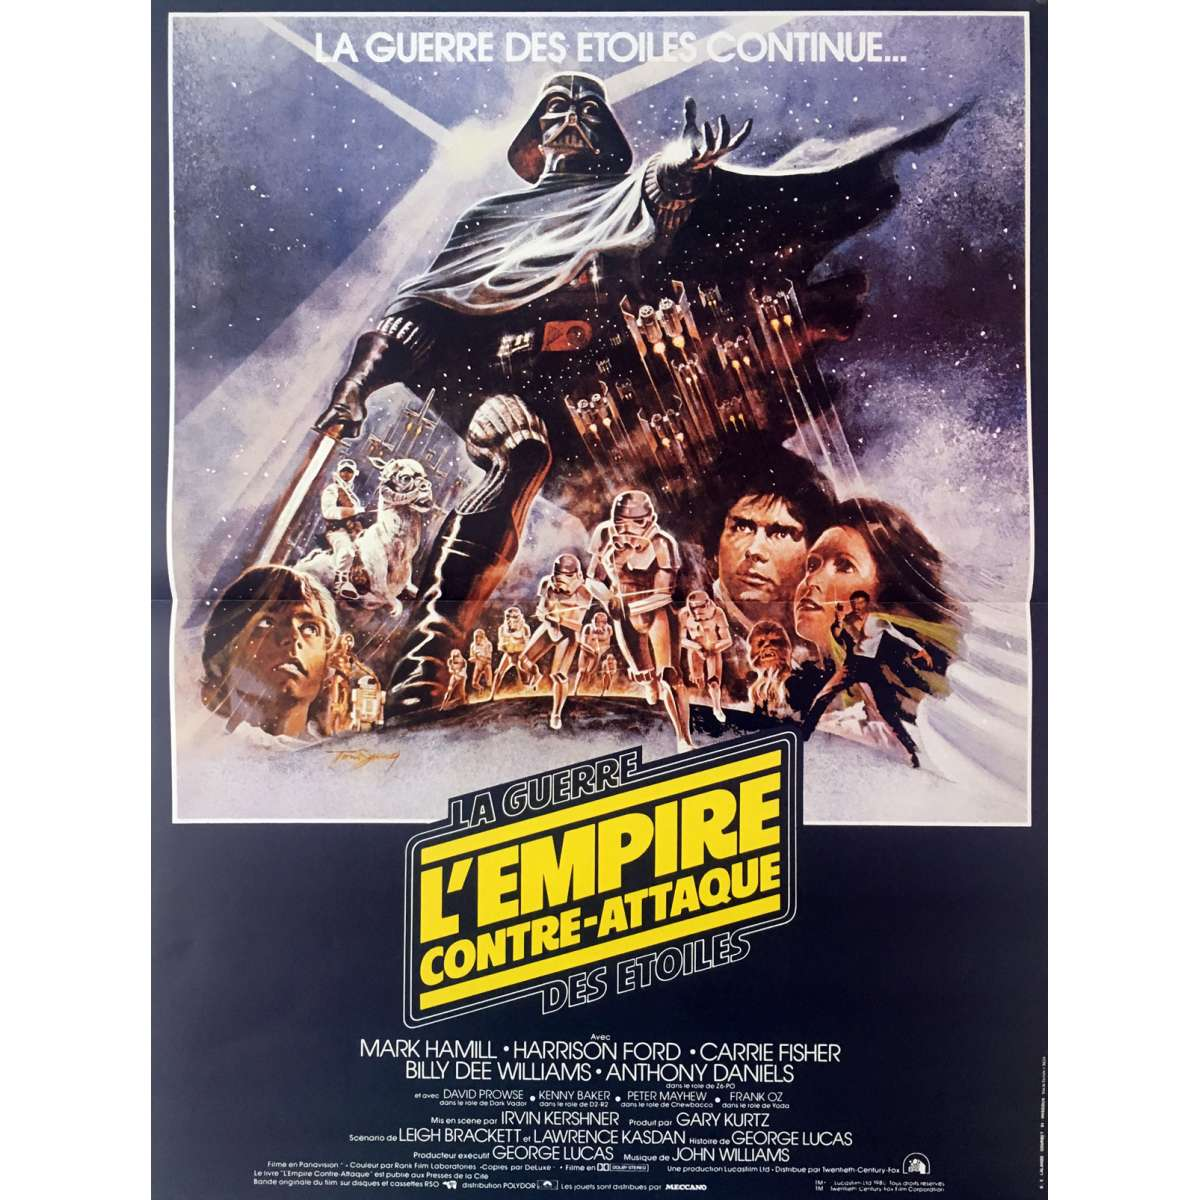 star wars empire strikes back movie poster style b 15x21 in r1990 george lucas harrison ford